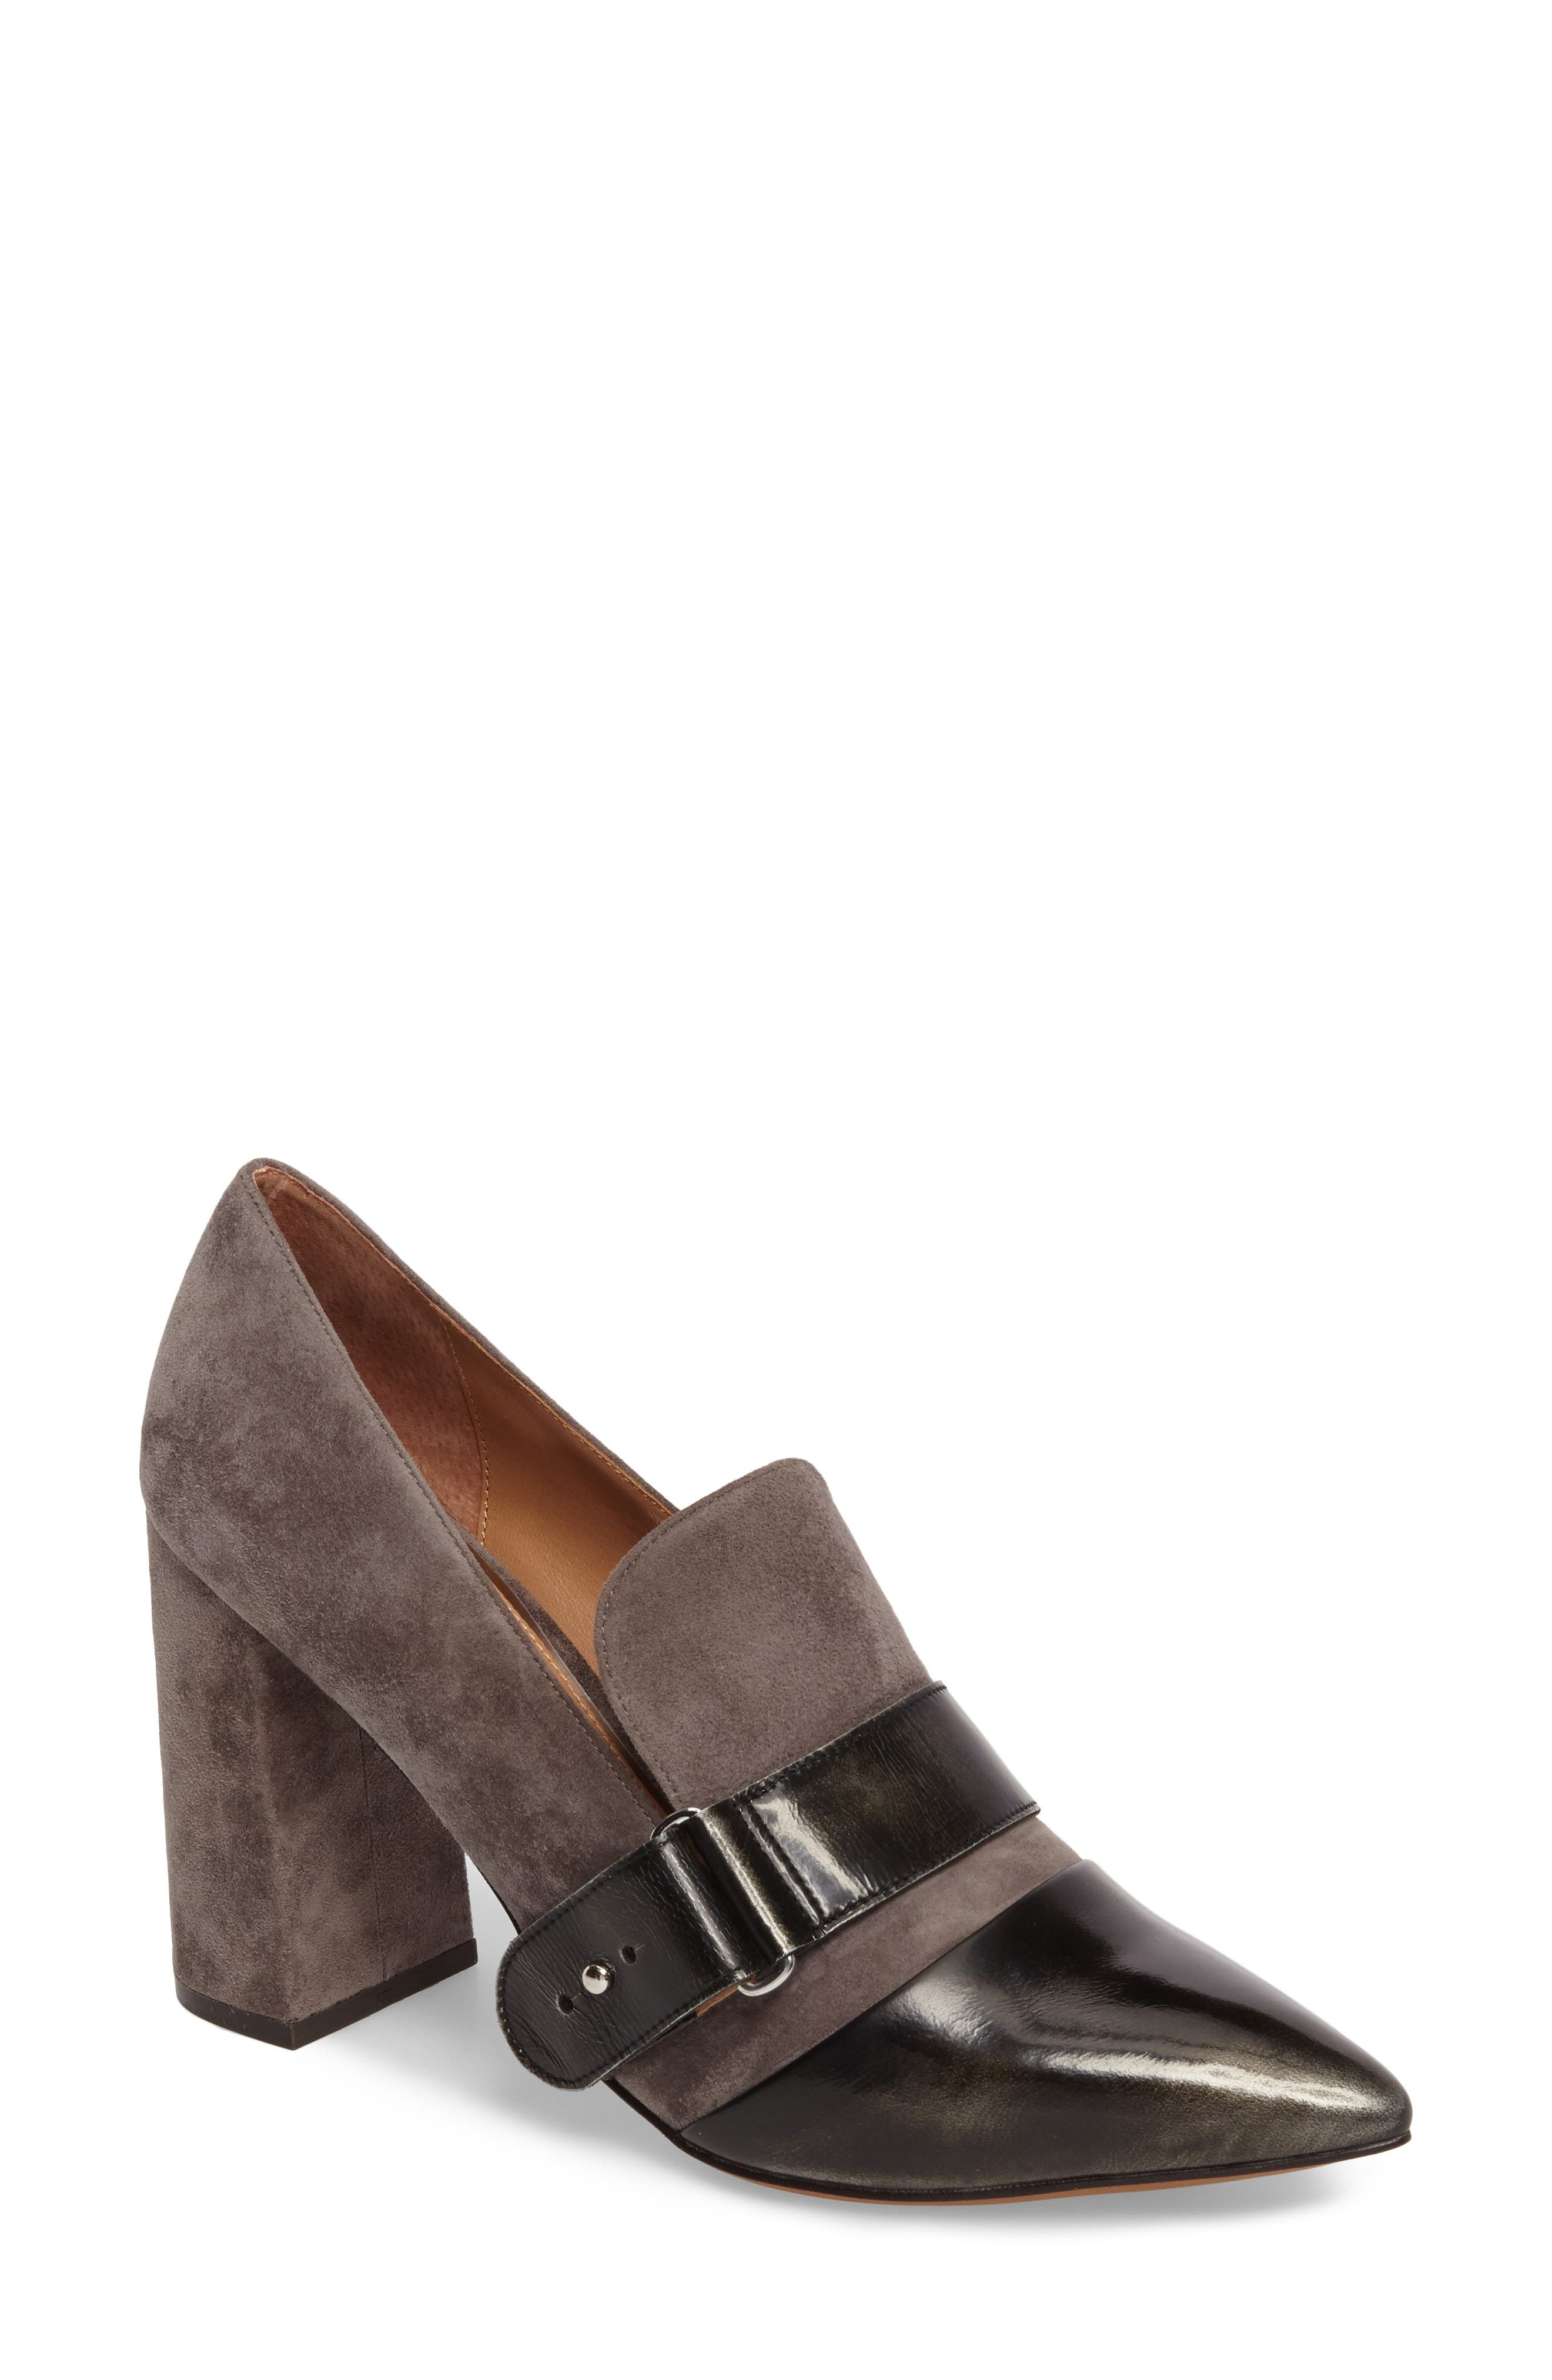 Alternate Image 1 Selected - Linea Paolo Casidy Buckle Pump (Women)